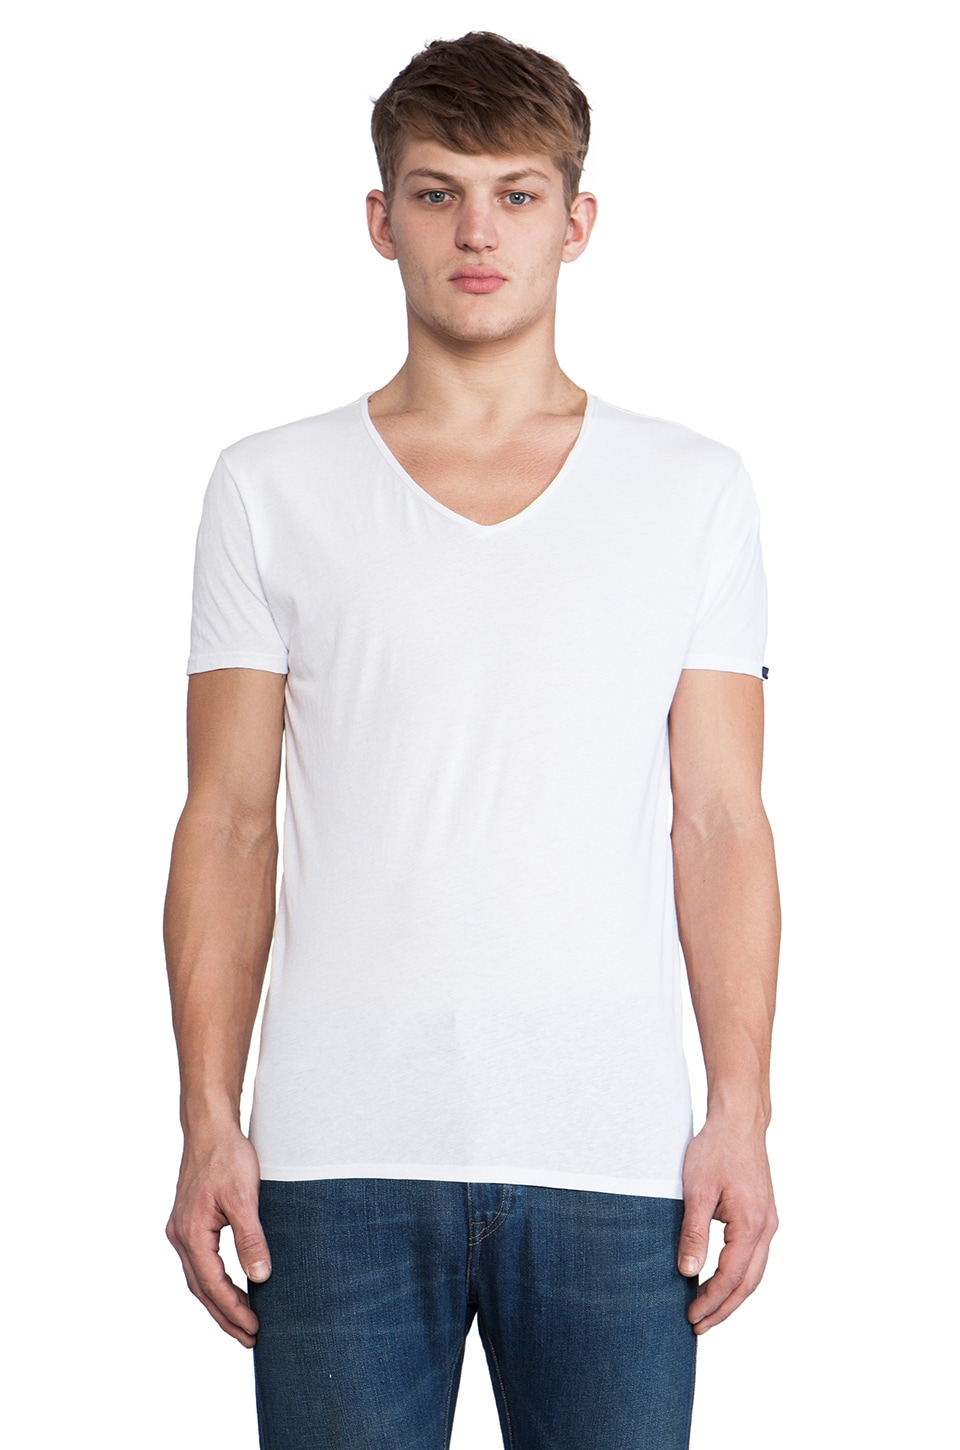 Scotch & Soda Home Alone Weekend V Neck in White